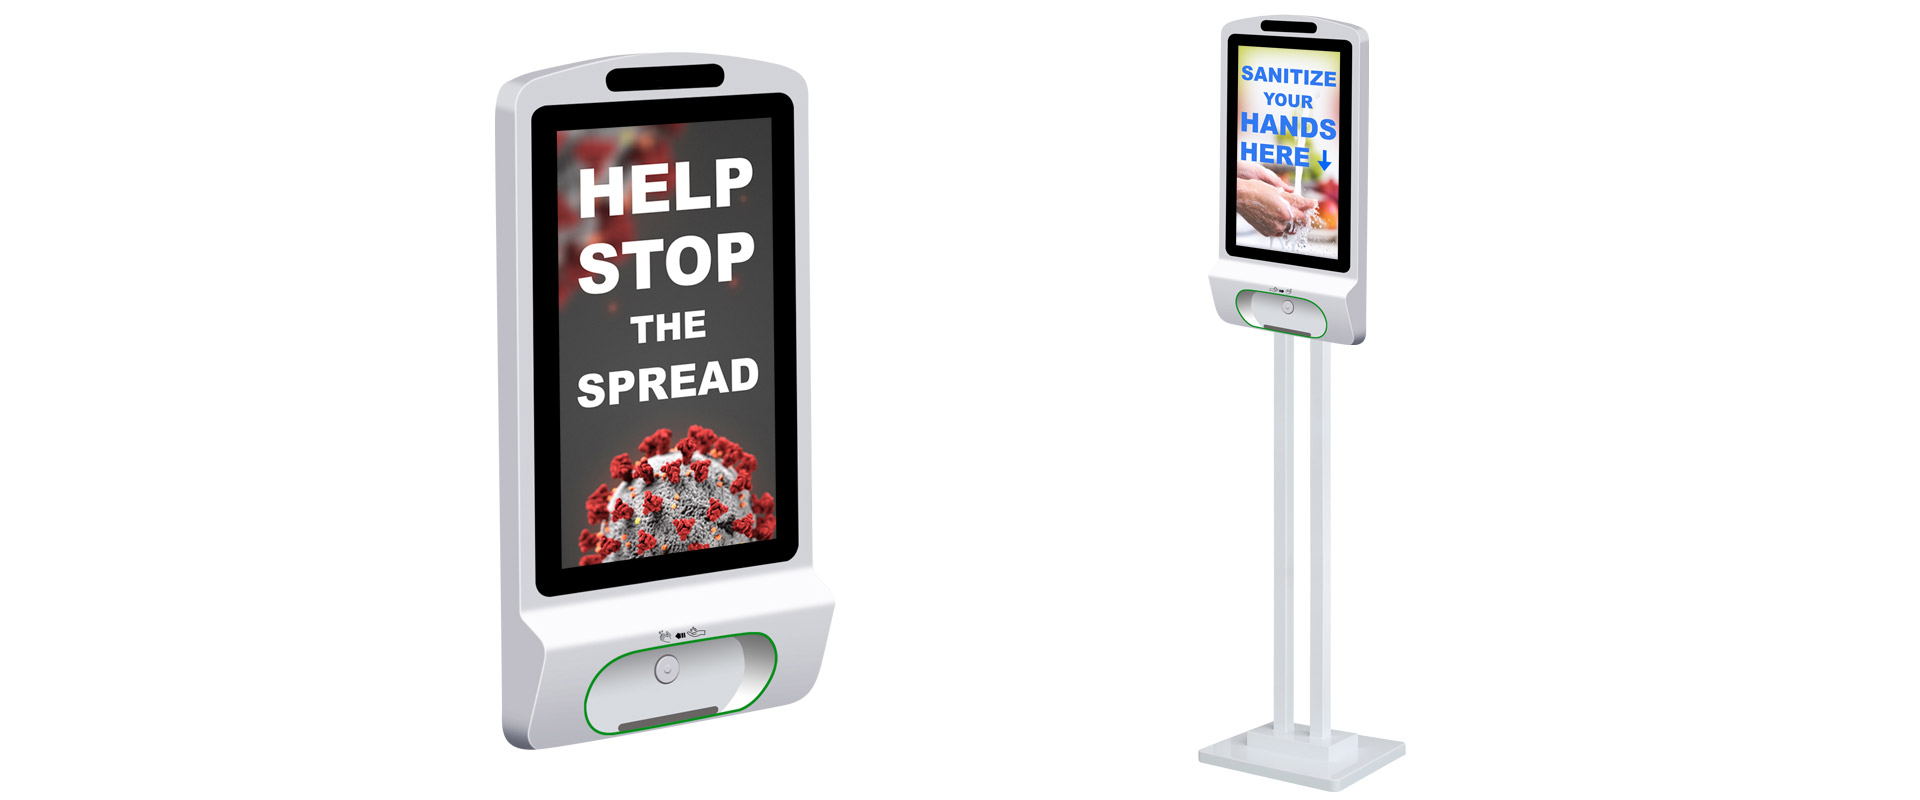 https://www.magnetic3d.com/wp-content/uploads/2020/04/Products_Kiosks_Banner.jpg